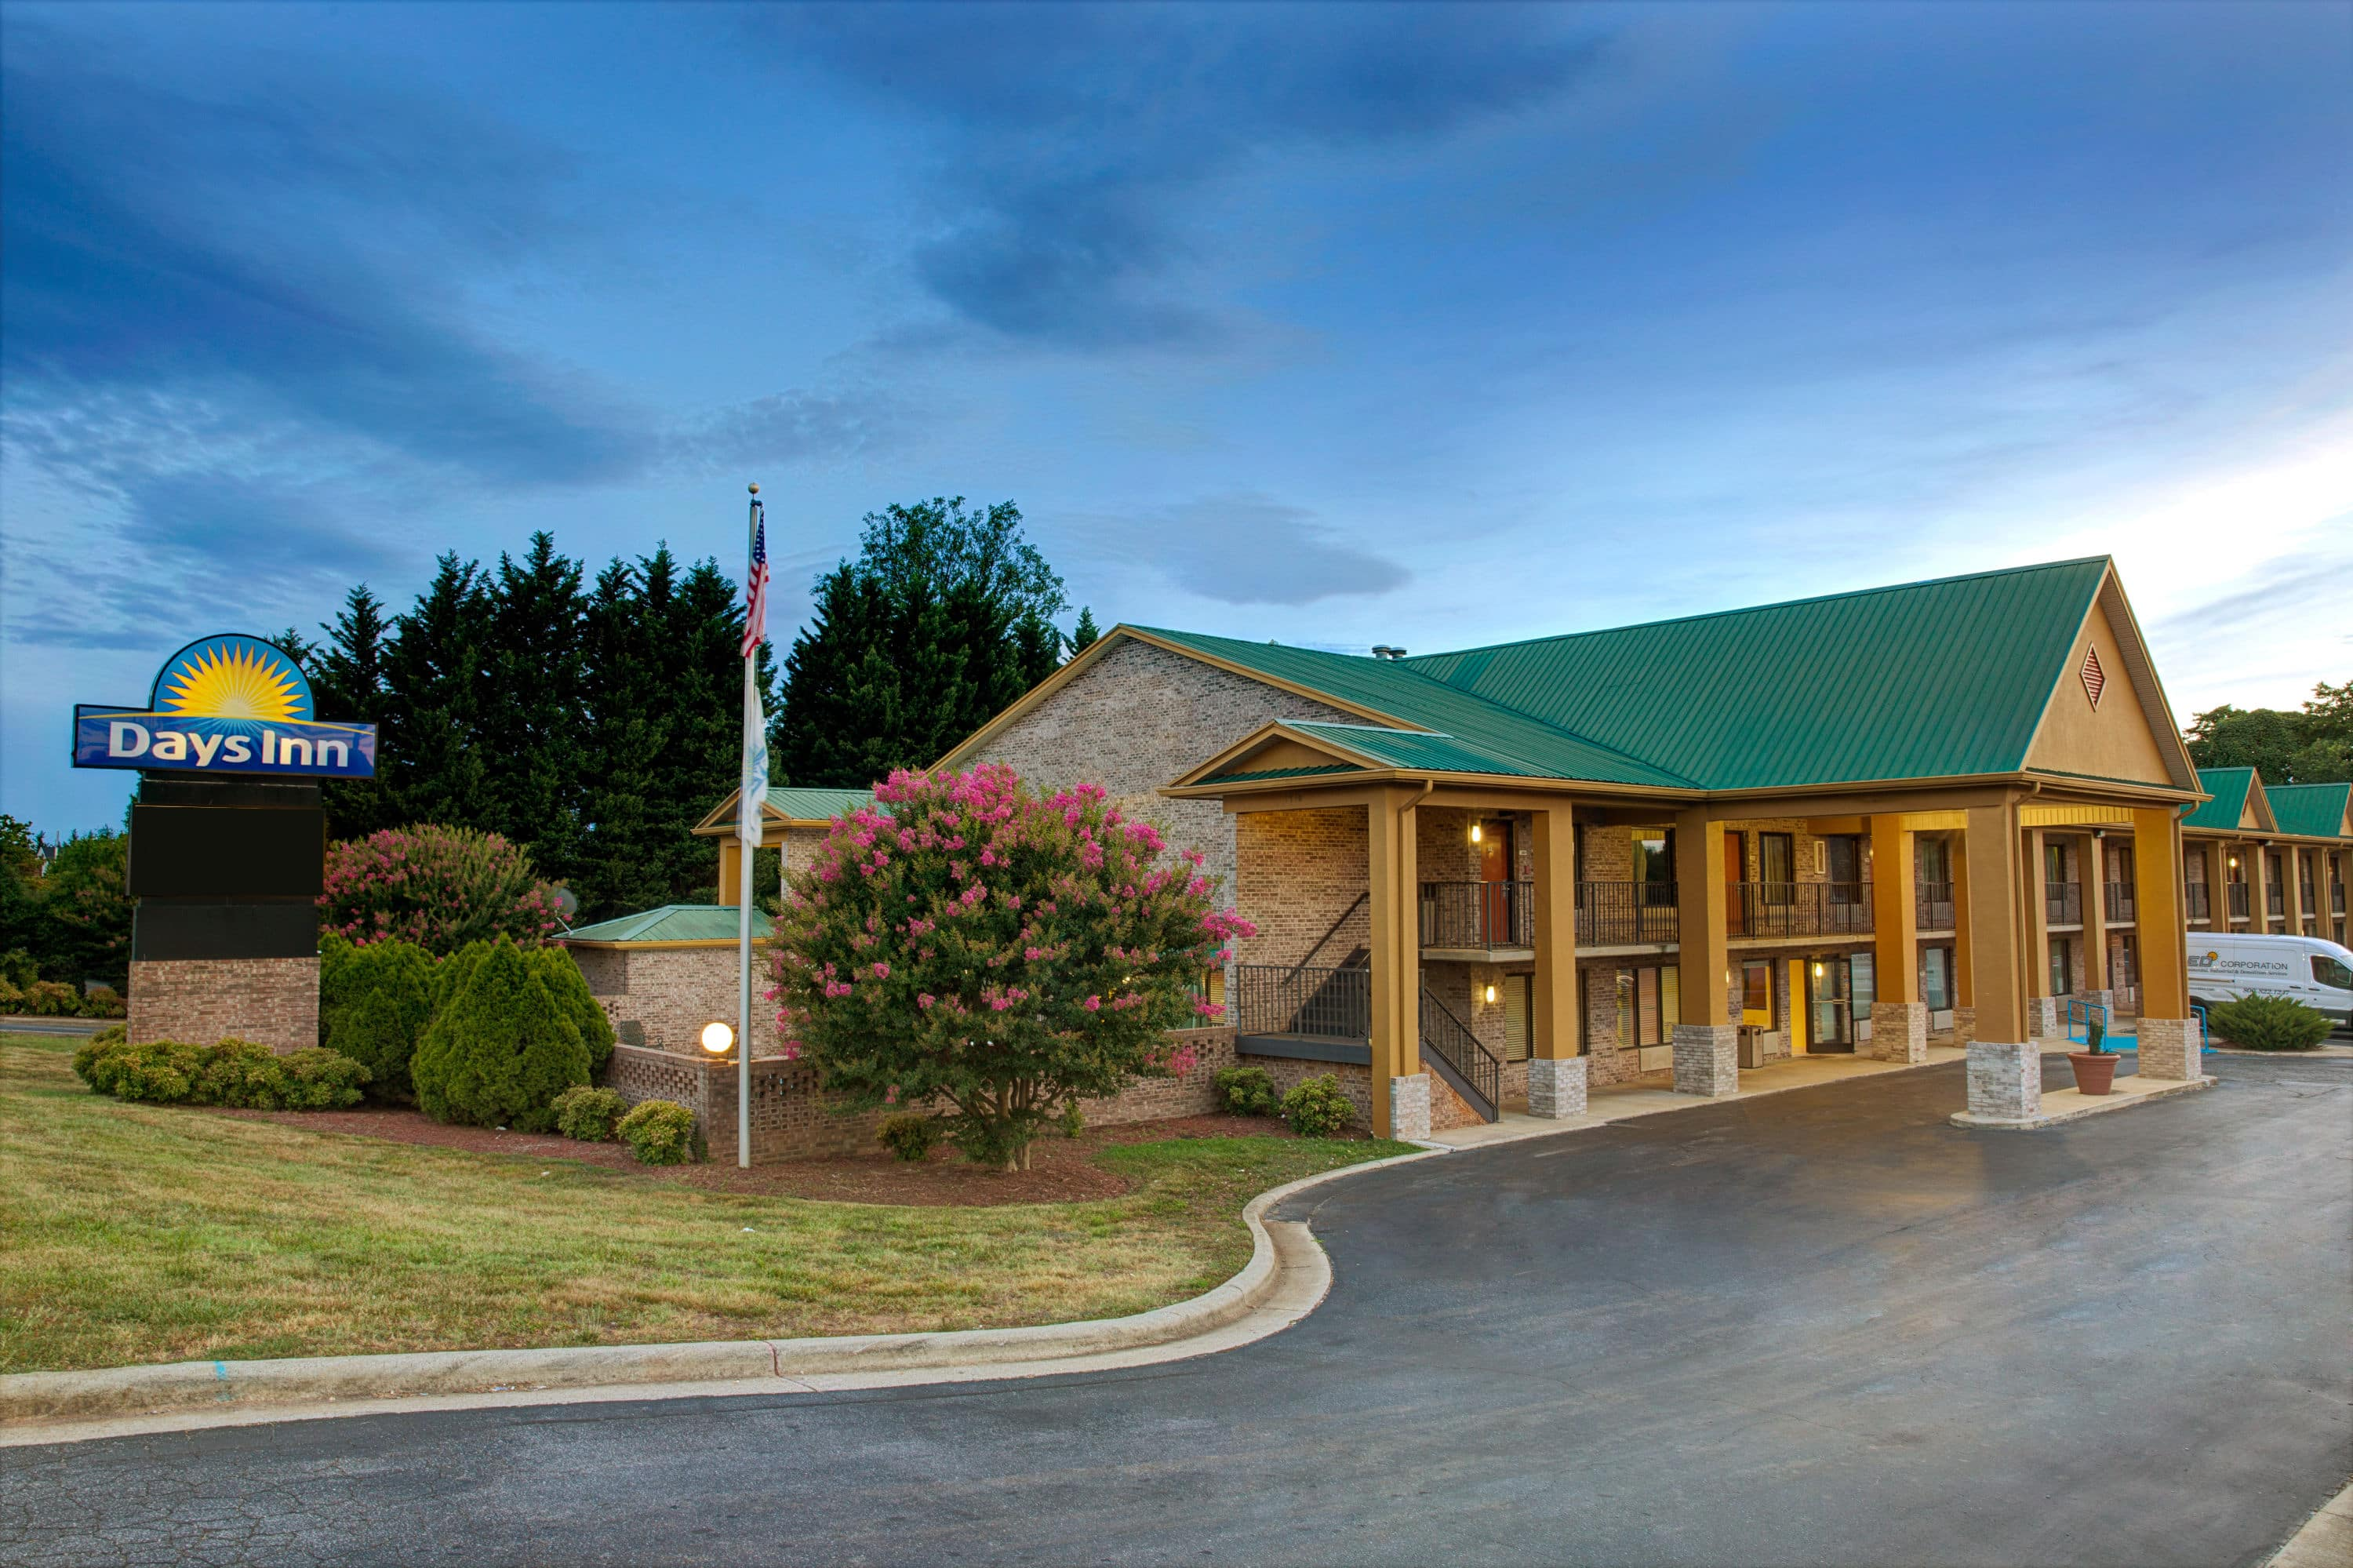 Exterior Of Days Inn Hotel In Conover North Carolina With Hotels Near Marion Nc